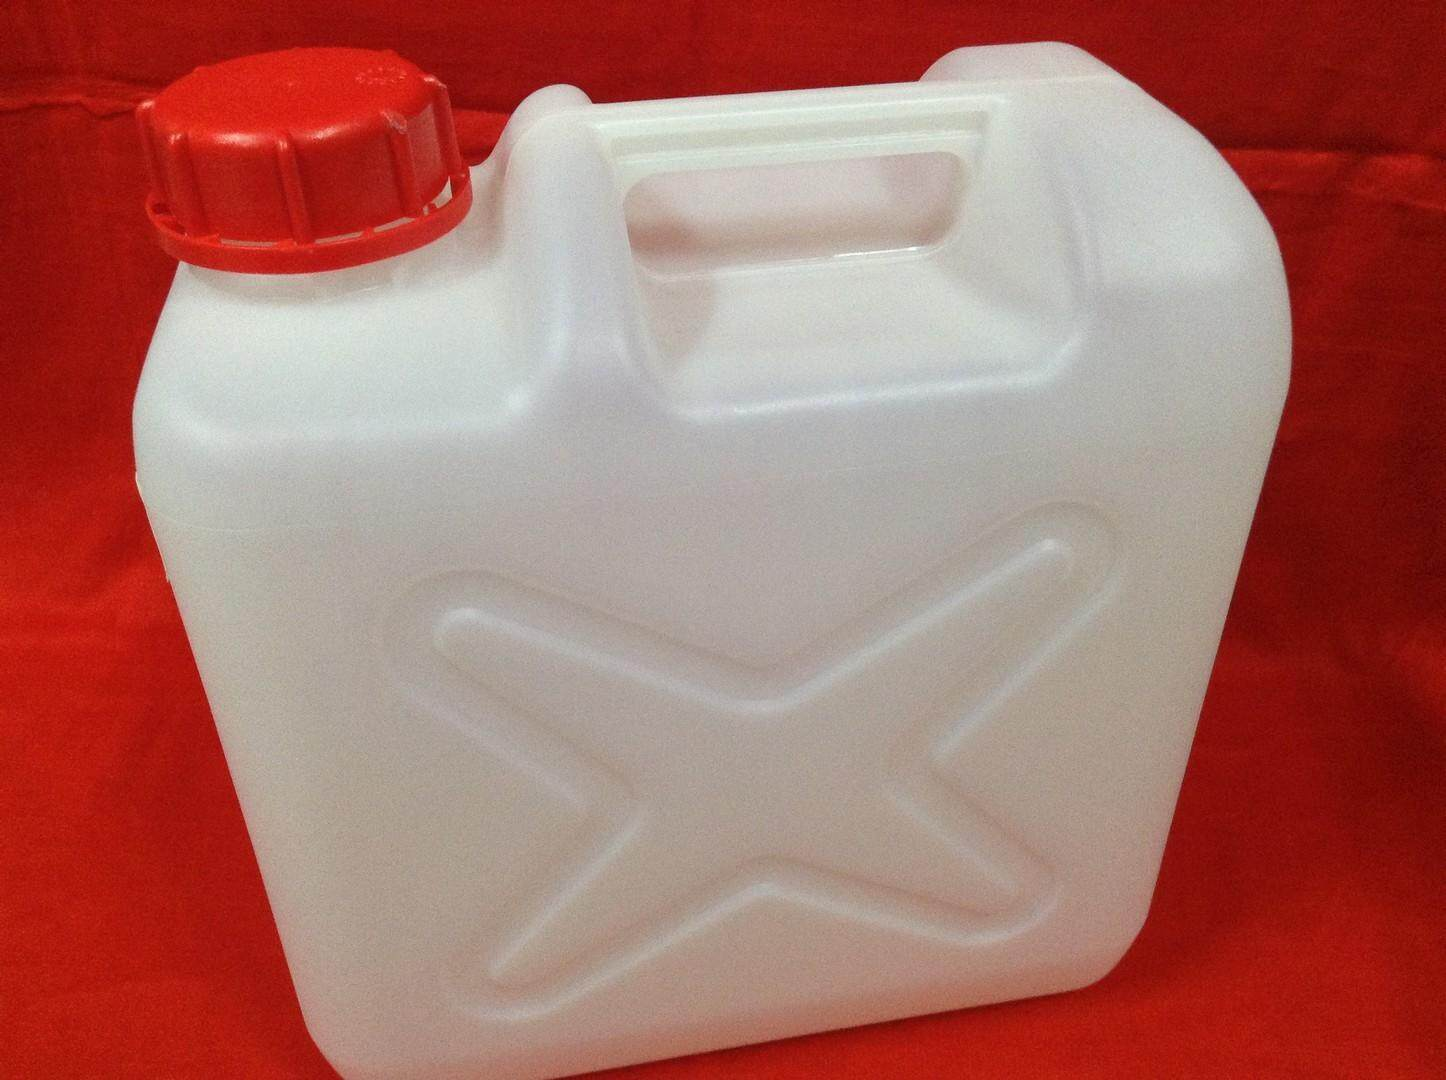 2pc Jerry Can 10 Liter for Petrol, Chemical, Alkaline Water. Ship within 6 hours (Off White)